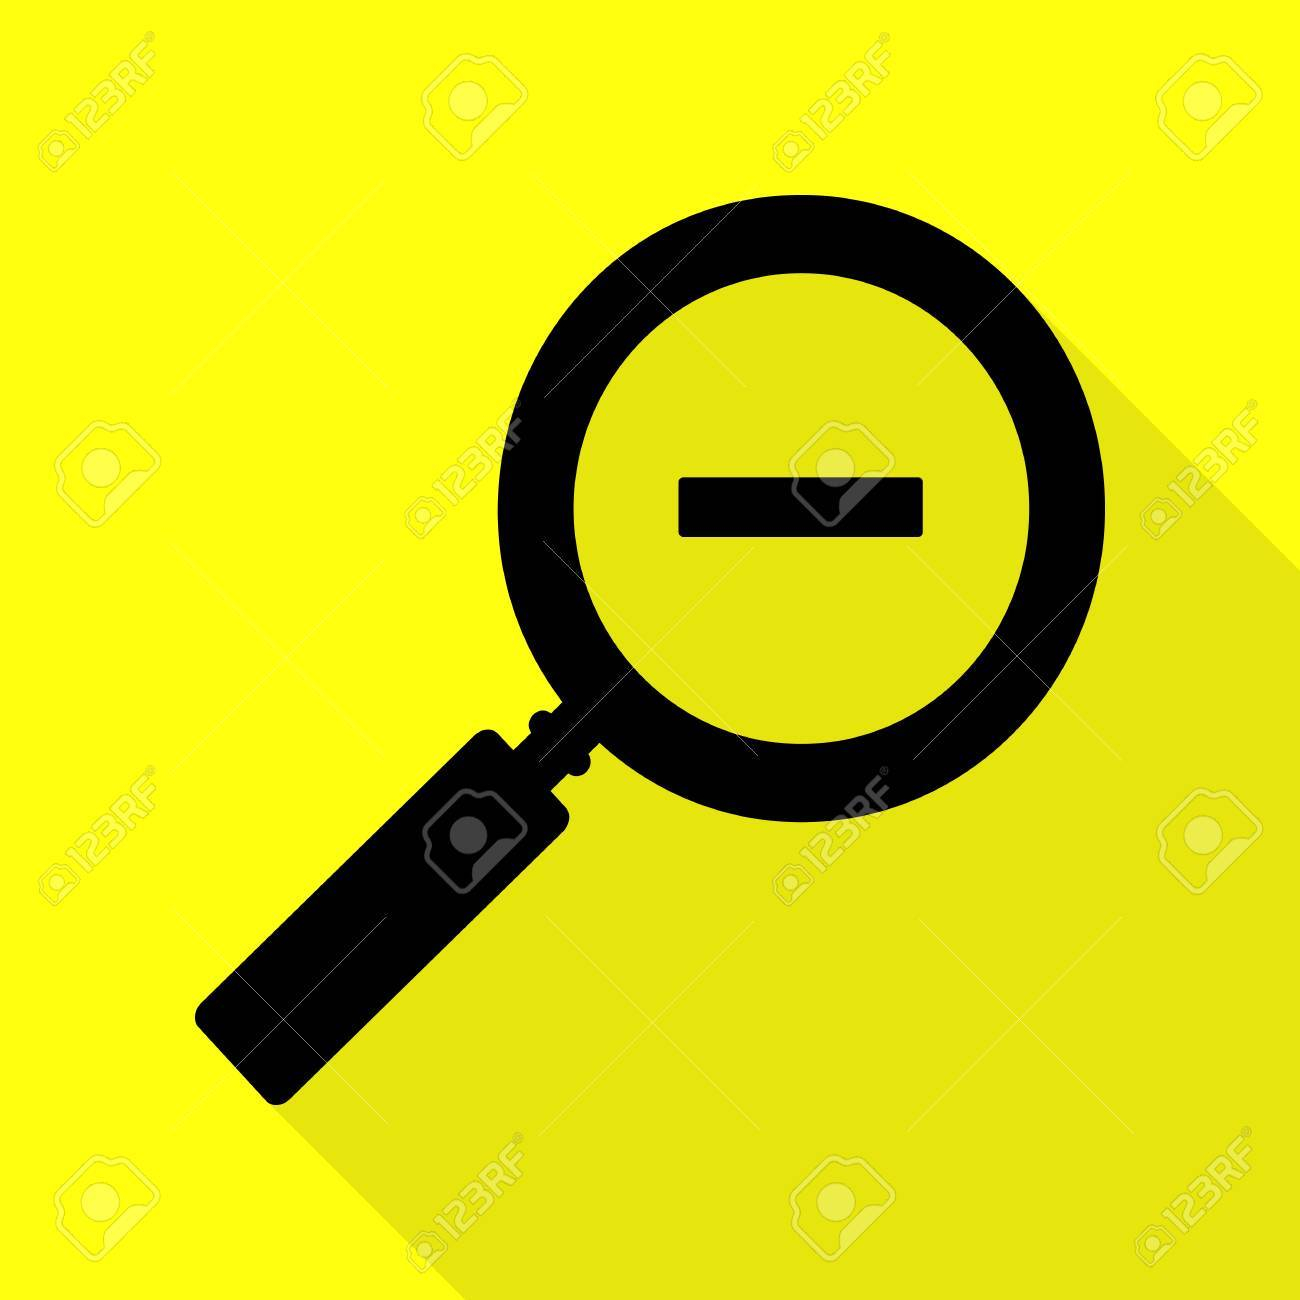 photo stock vector zoom sign illustration black icon with flat style shadow path on yellow background